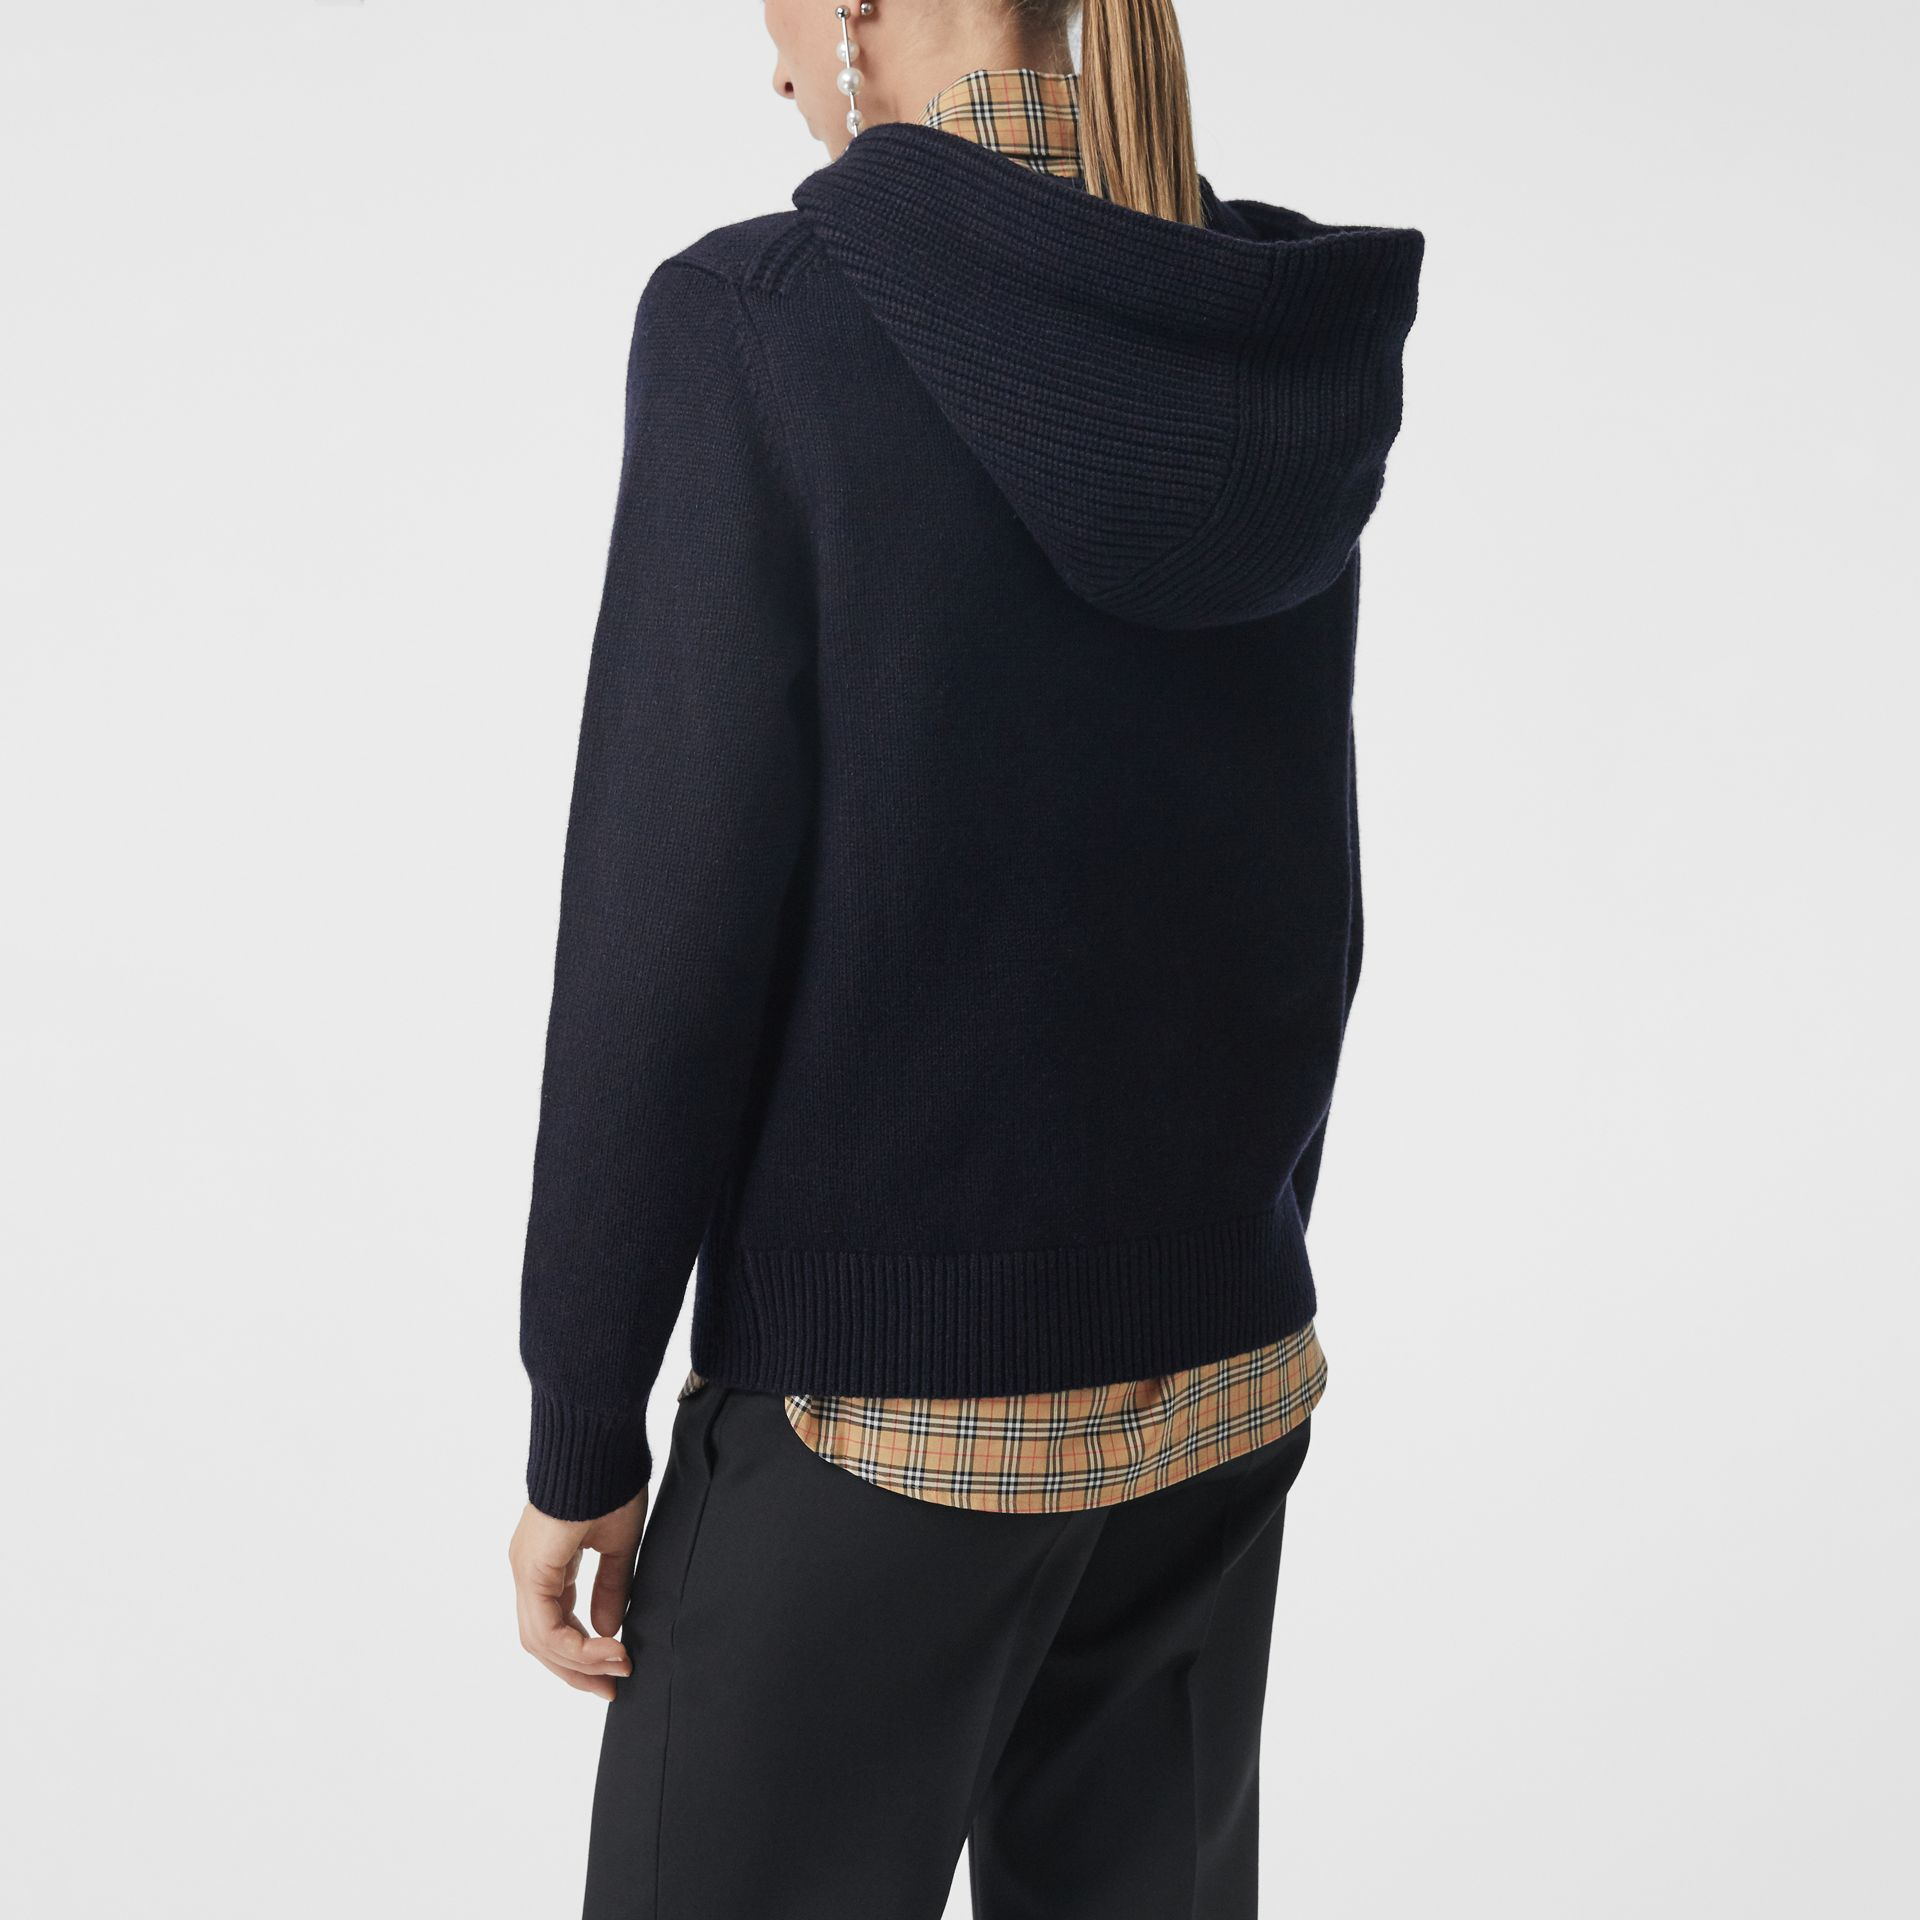 Embroidered Crest Cashmere Hooded Top in Navy - Women | Burberry United Kingdom - gallery image 2